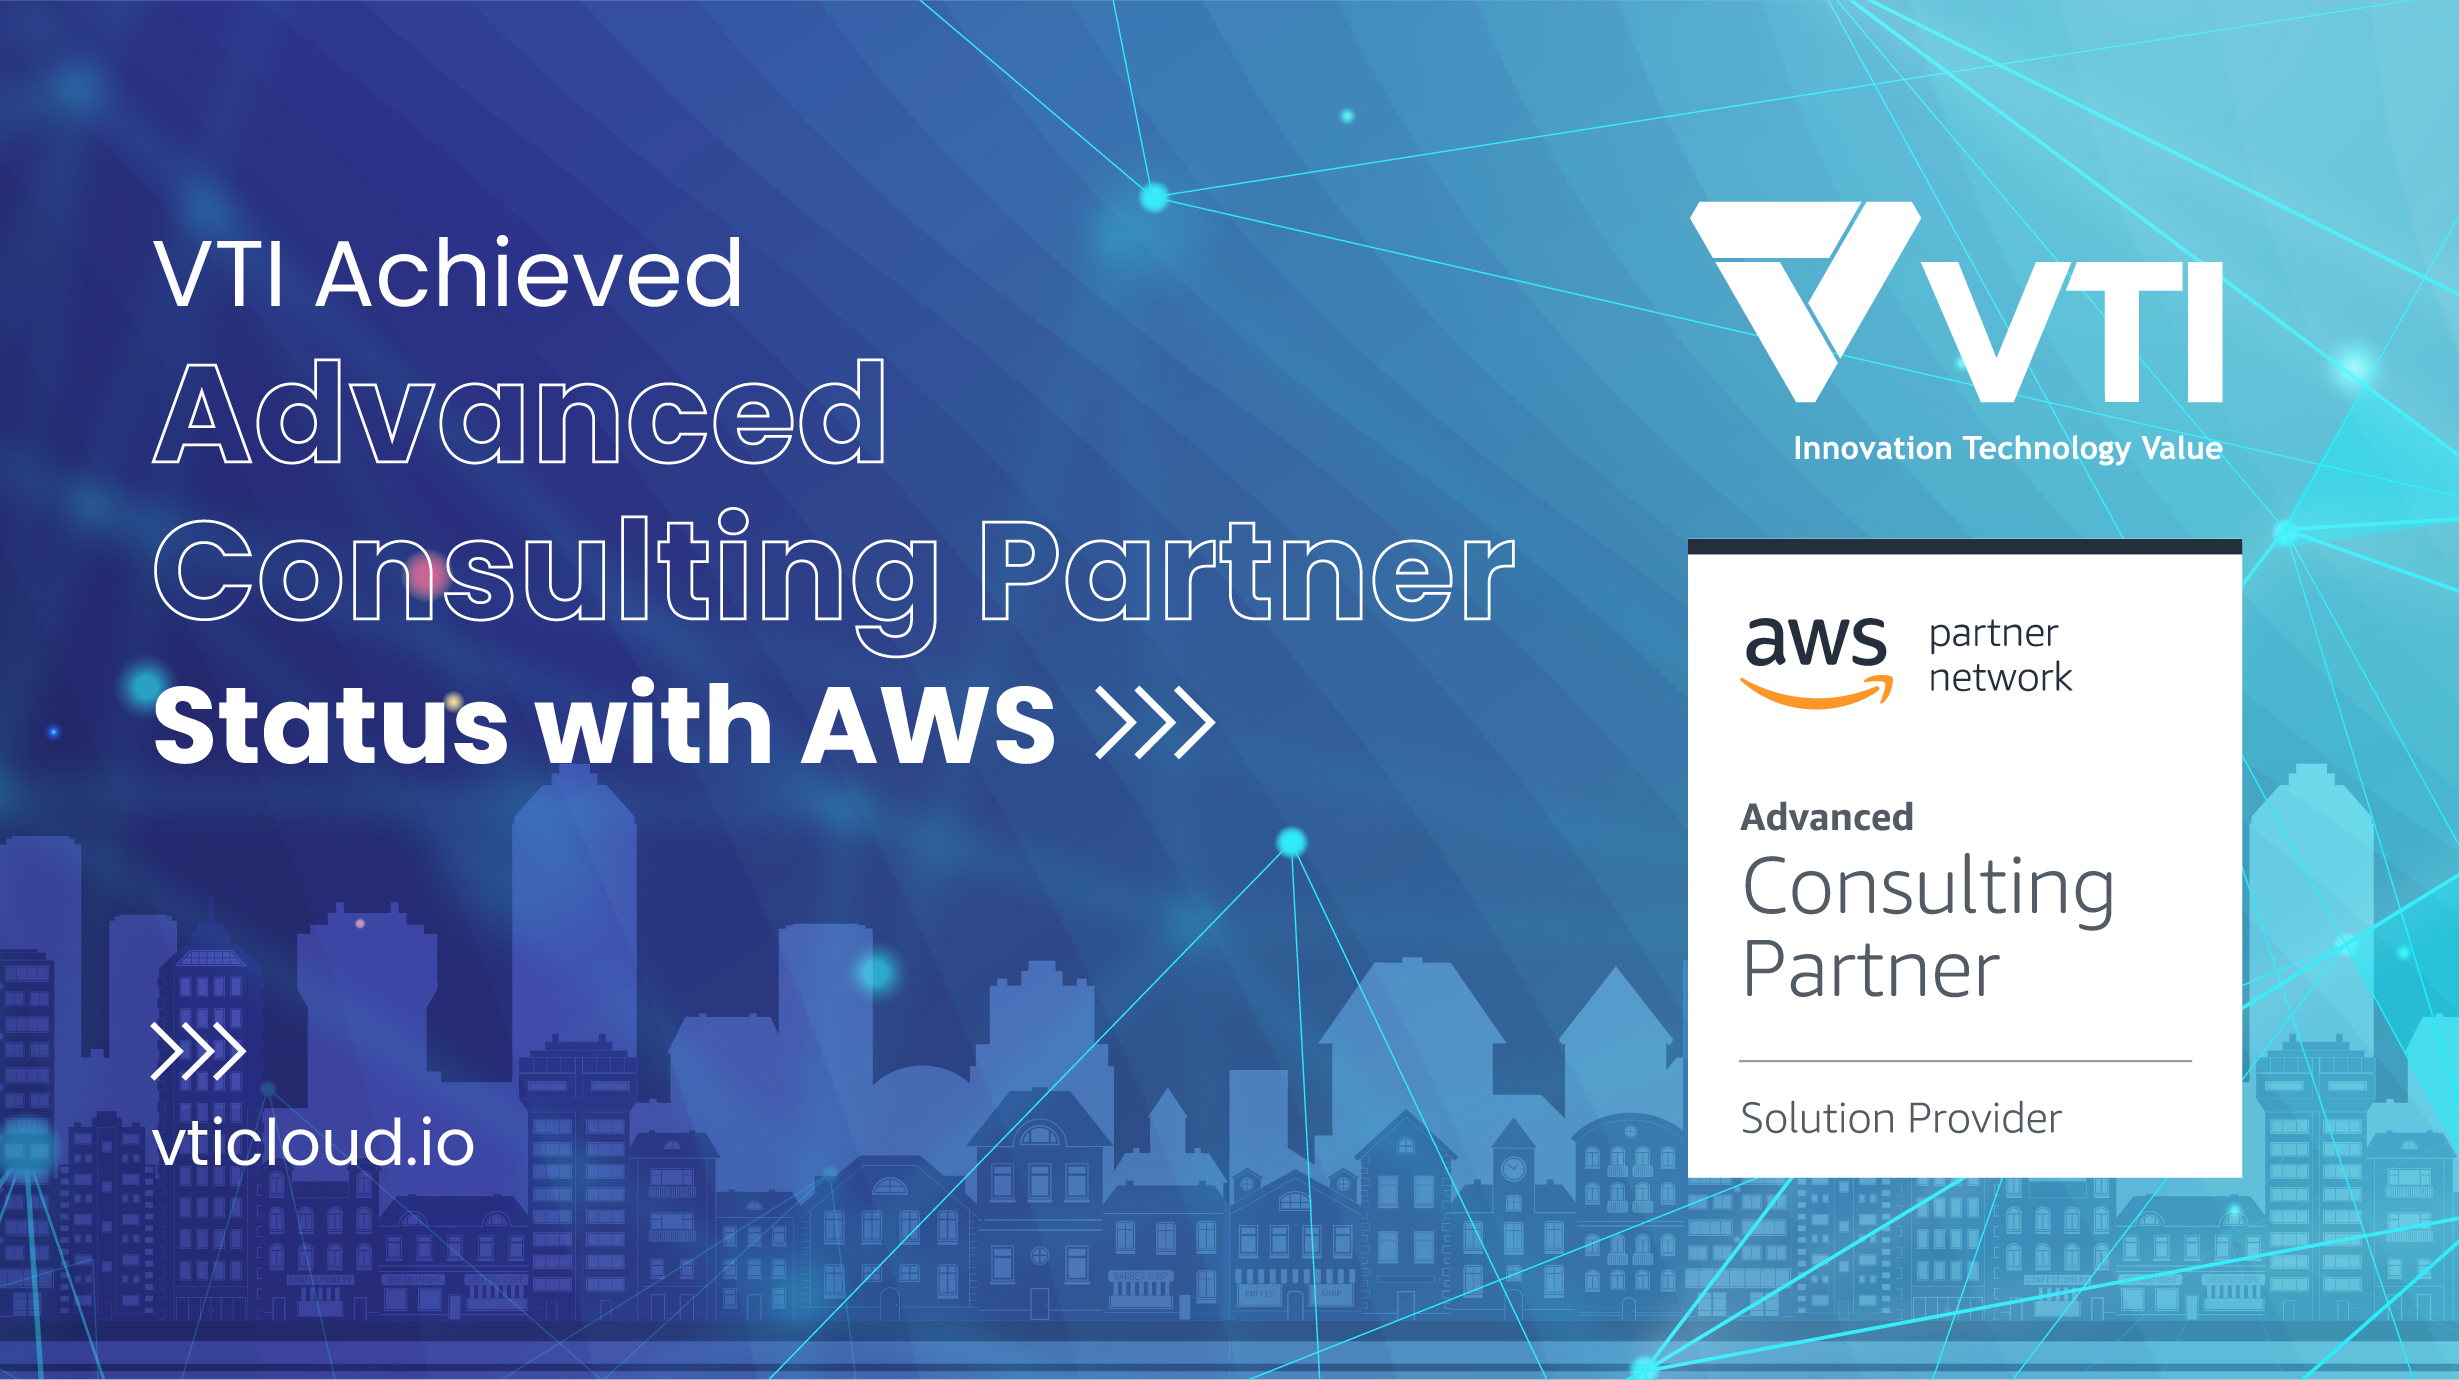 VTI officially becomes AWS's Advanced Consulting Partner